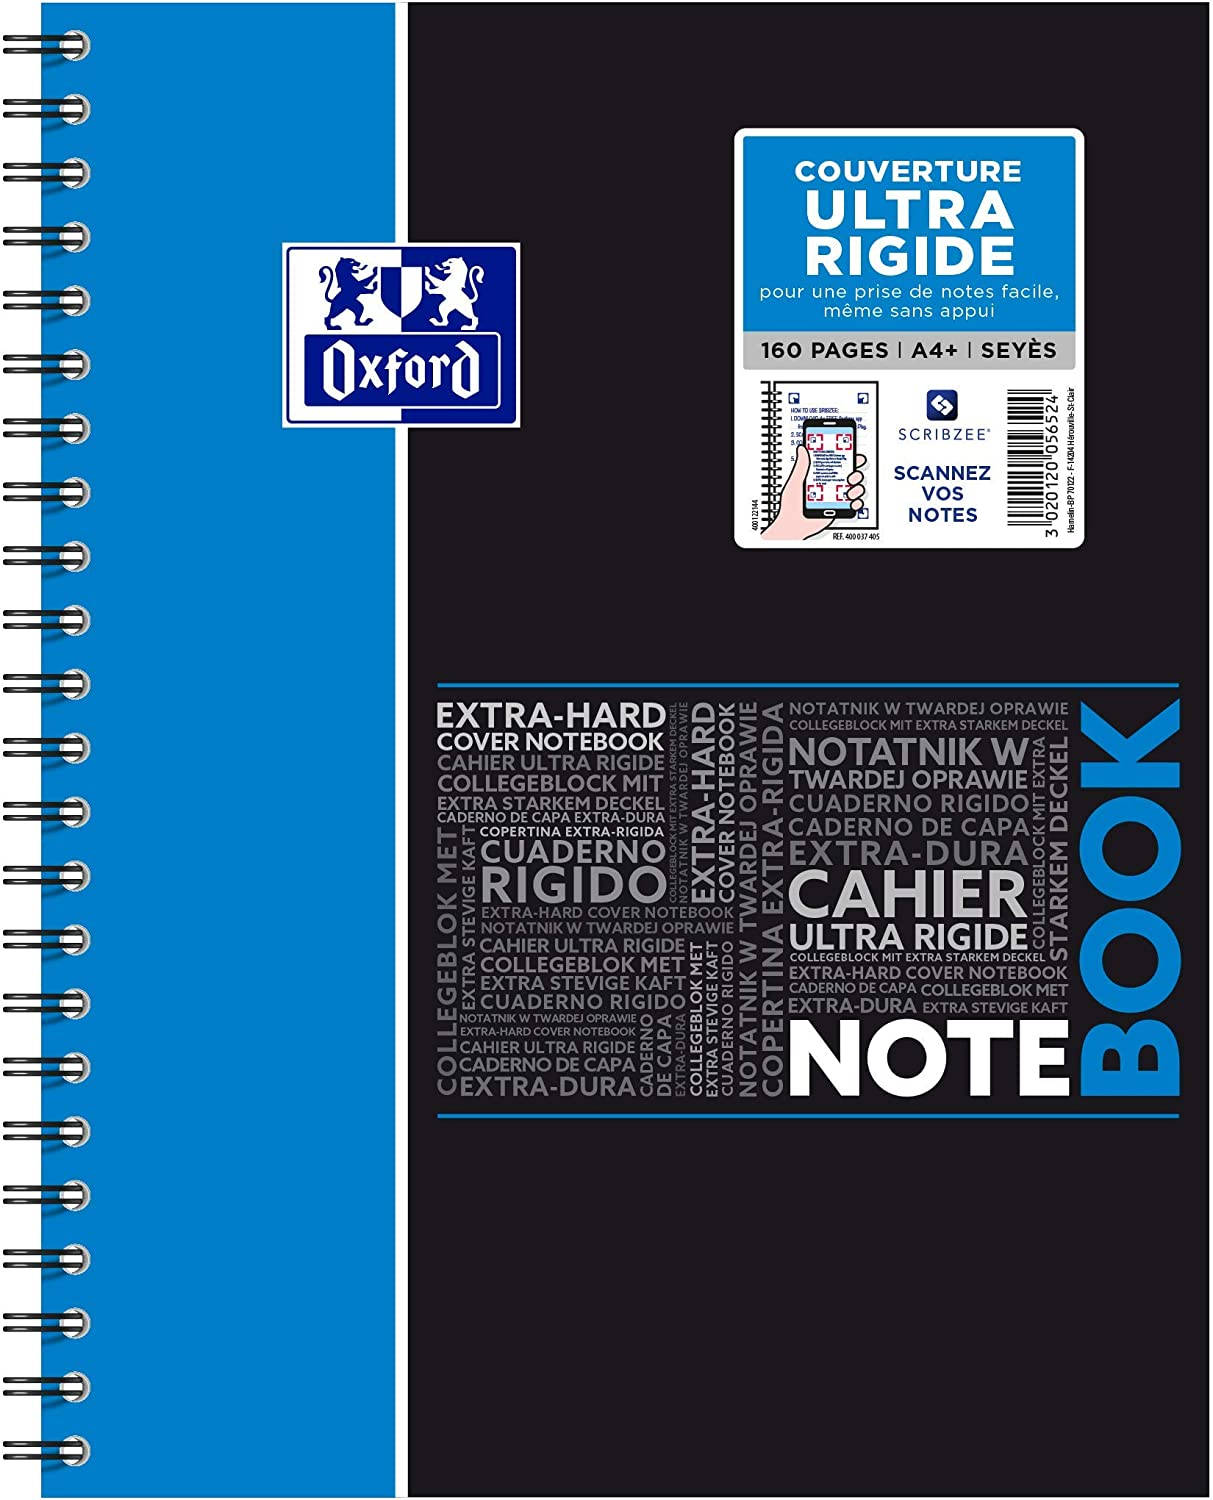 Deluxe Oxford wholesale NoteBook Spiral-Bound Notebook A4+ 160 Pages Square Large